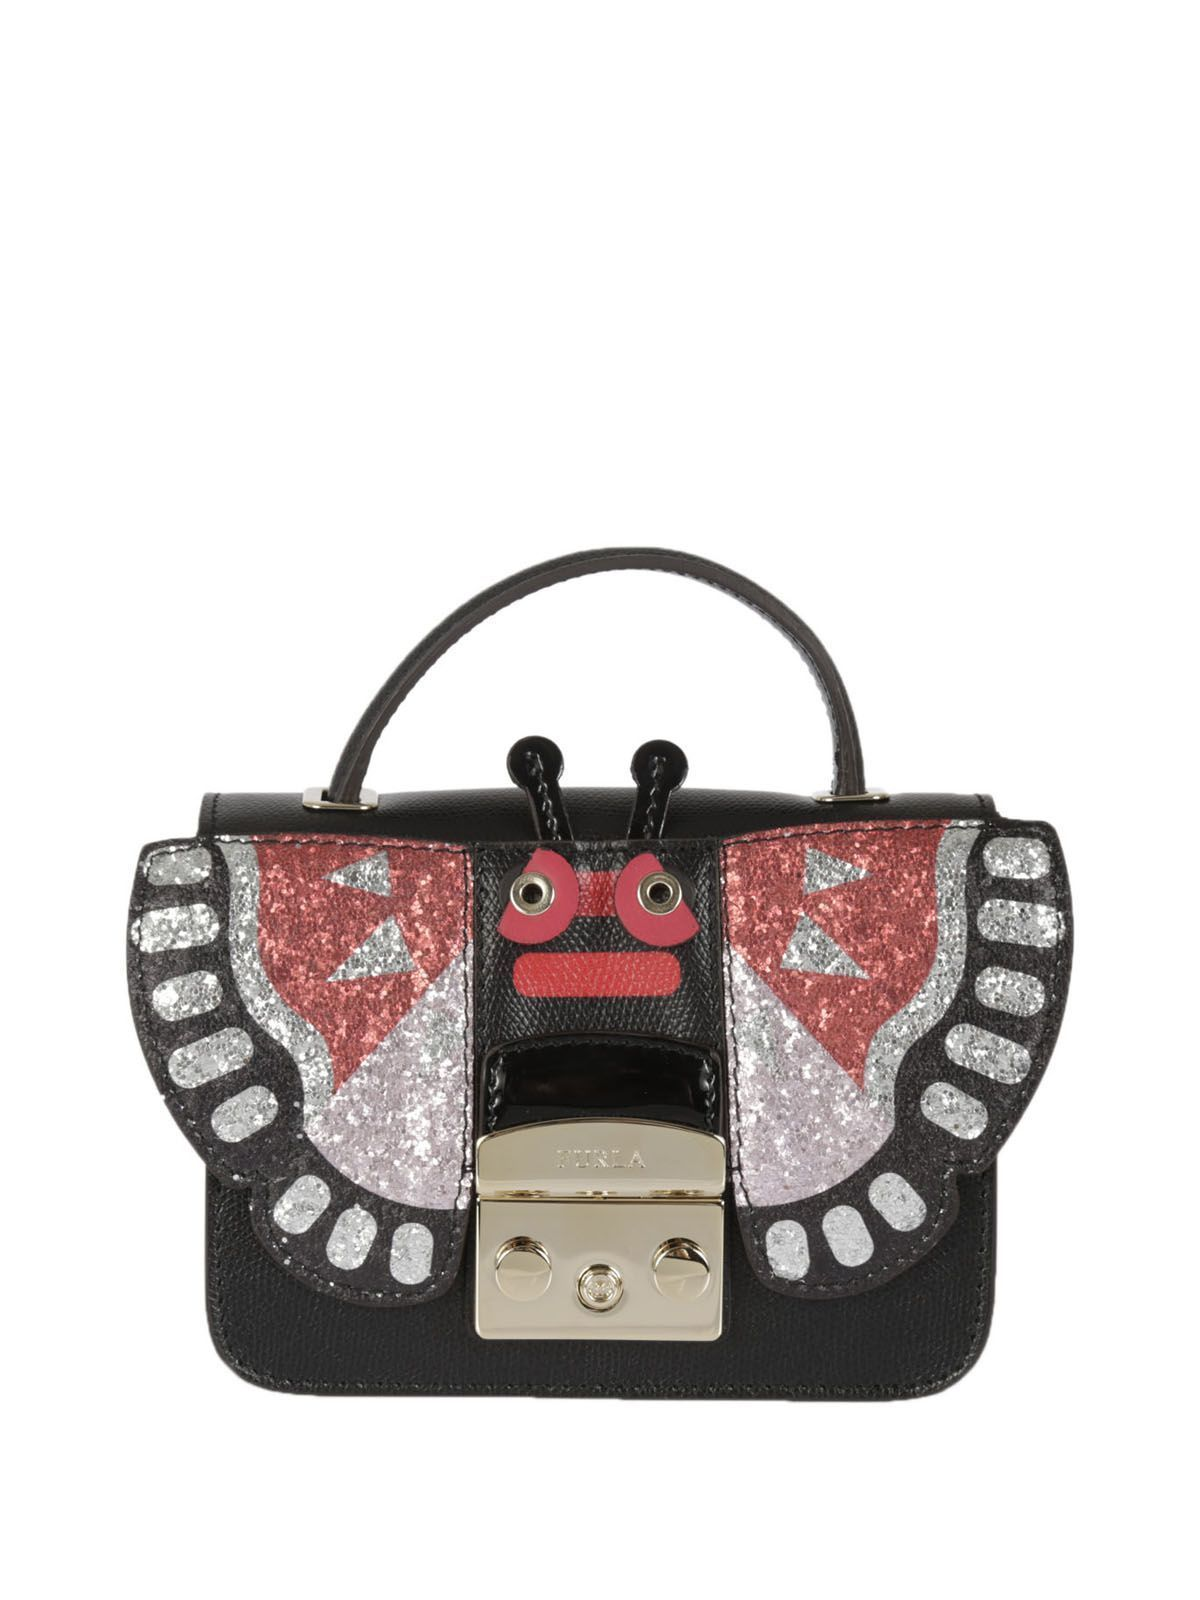 送料込 Furla Metropolis Doodle Top Handle Bag バッグ